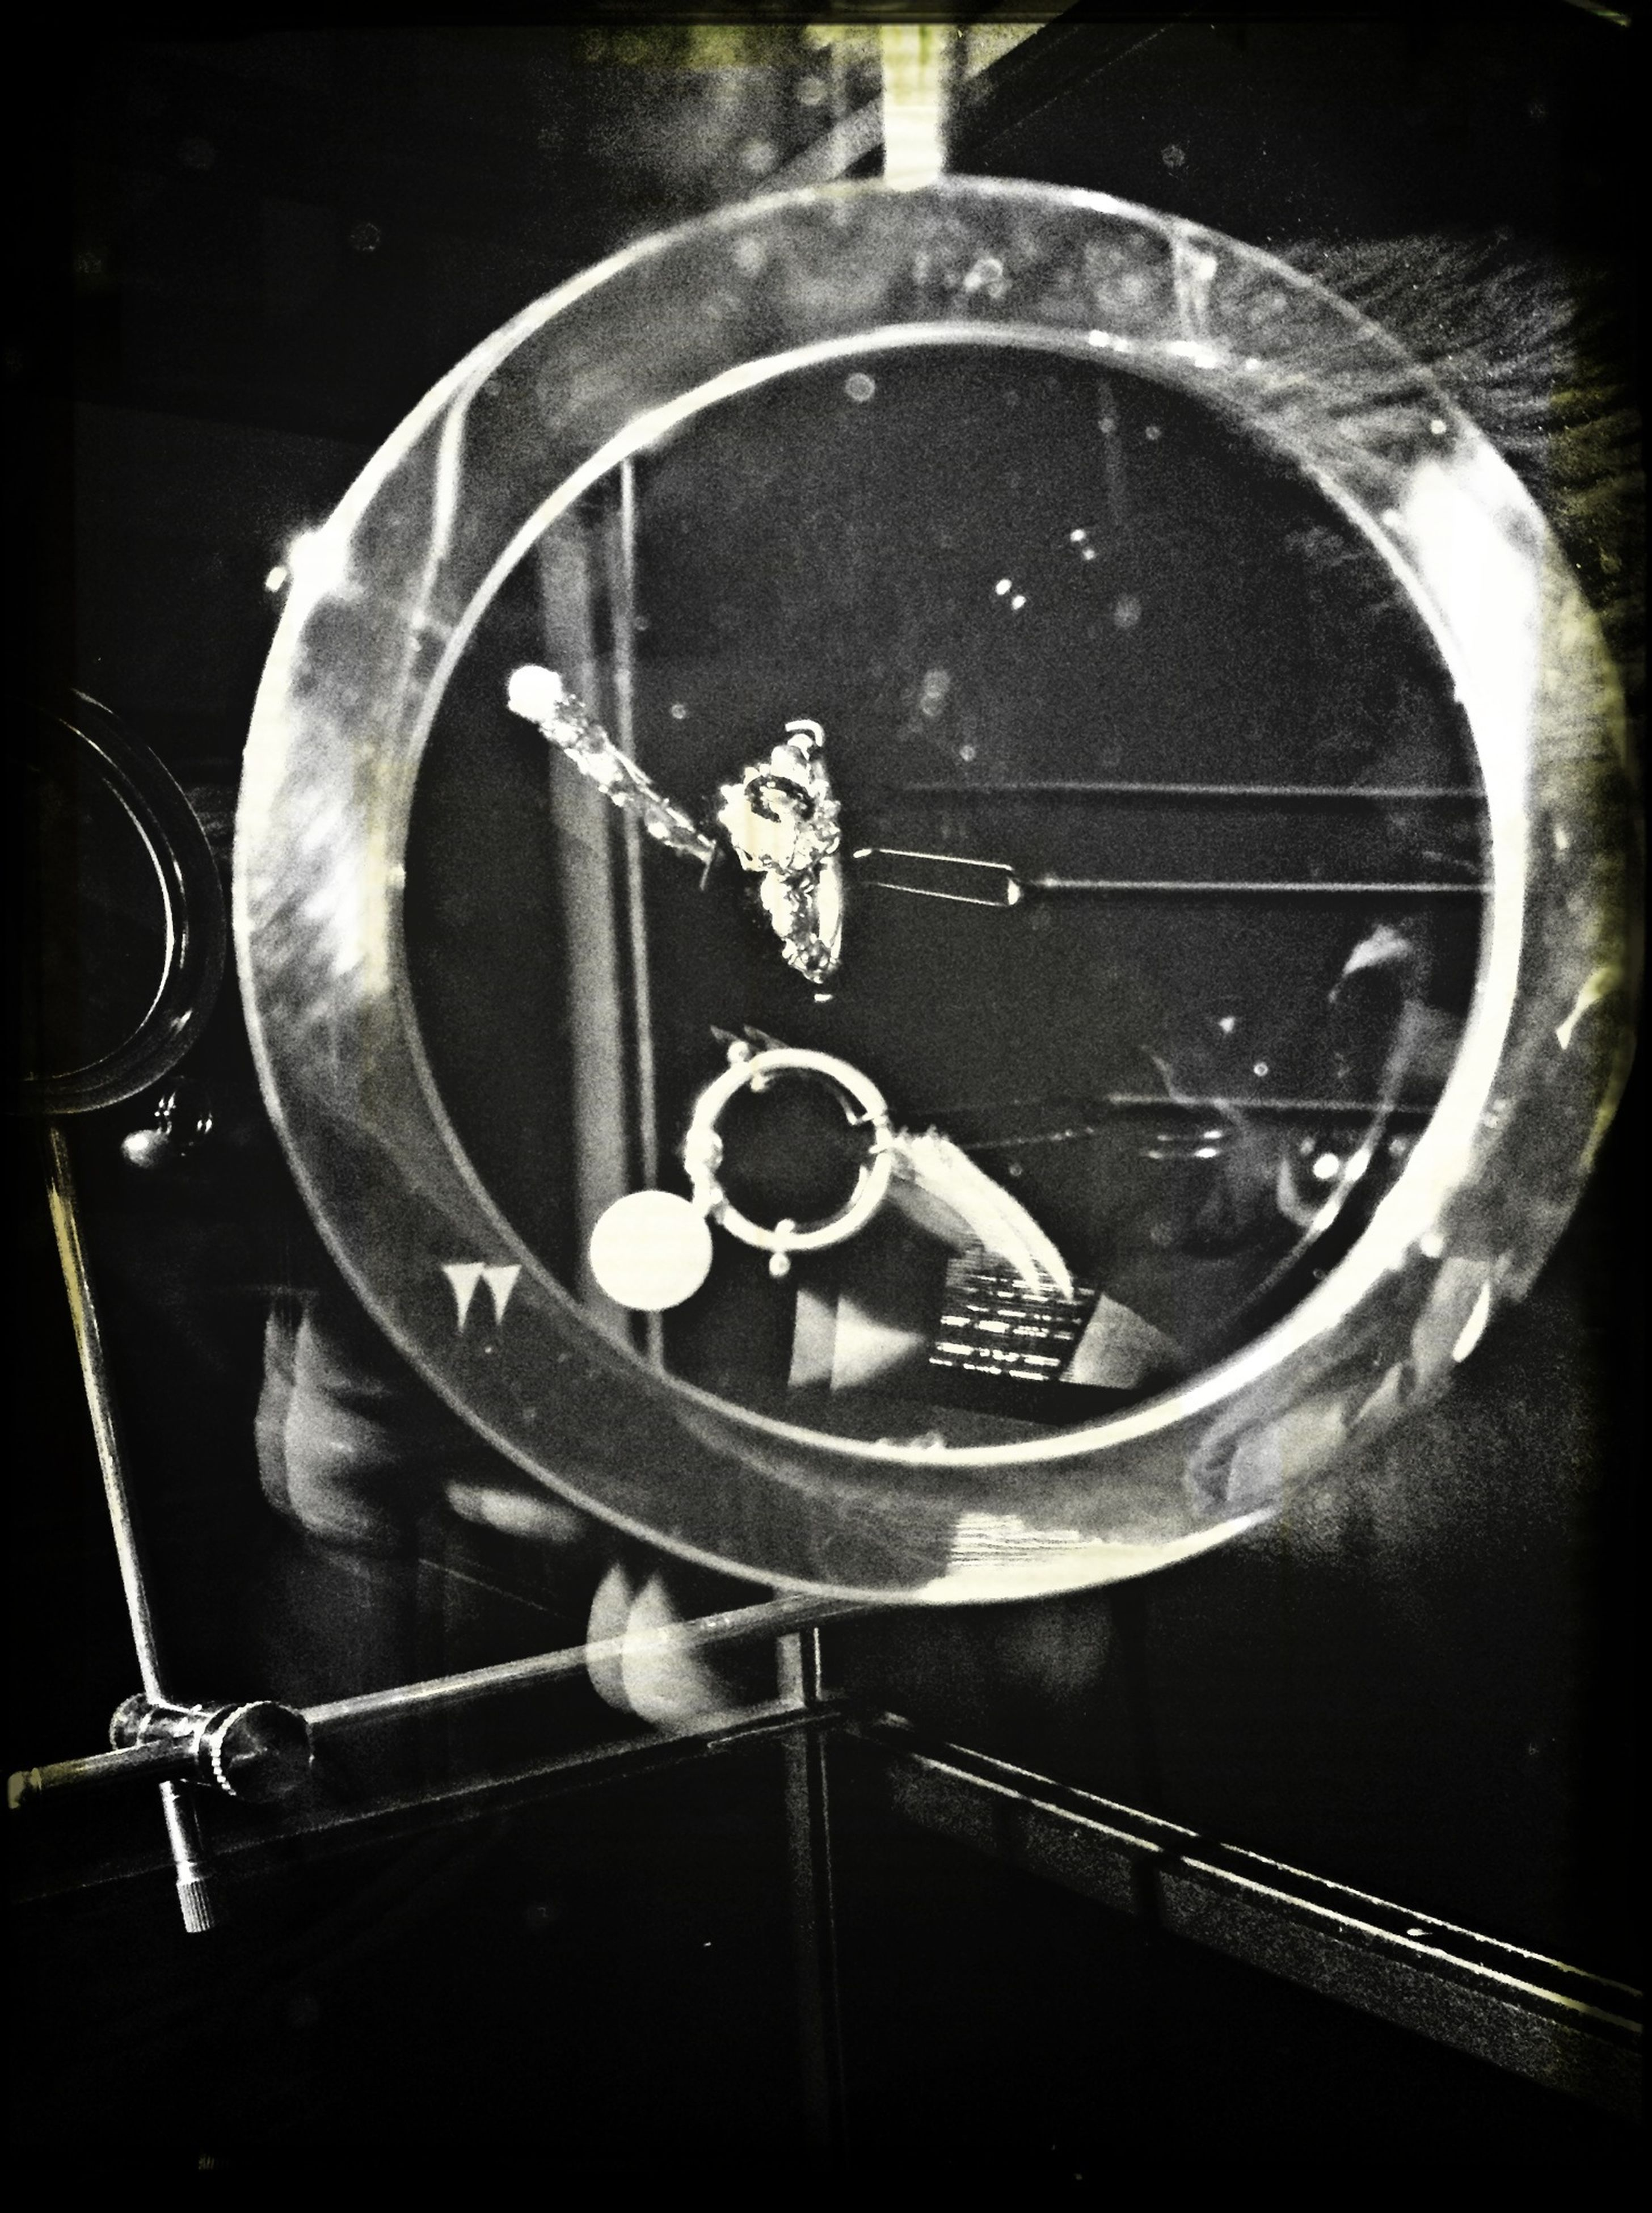 metal, high angle view, indoors, close-up, equipment, part of, one person, auto post production filter, holding, transfer print, cropped, circle, day, industry, preparation, music, directly above, spoon, metallic